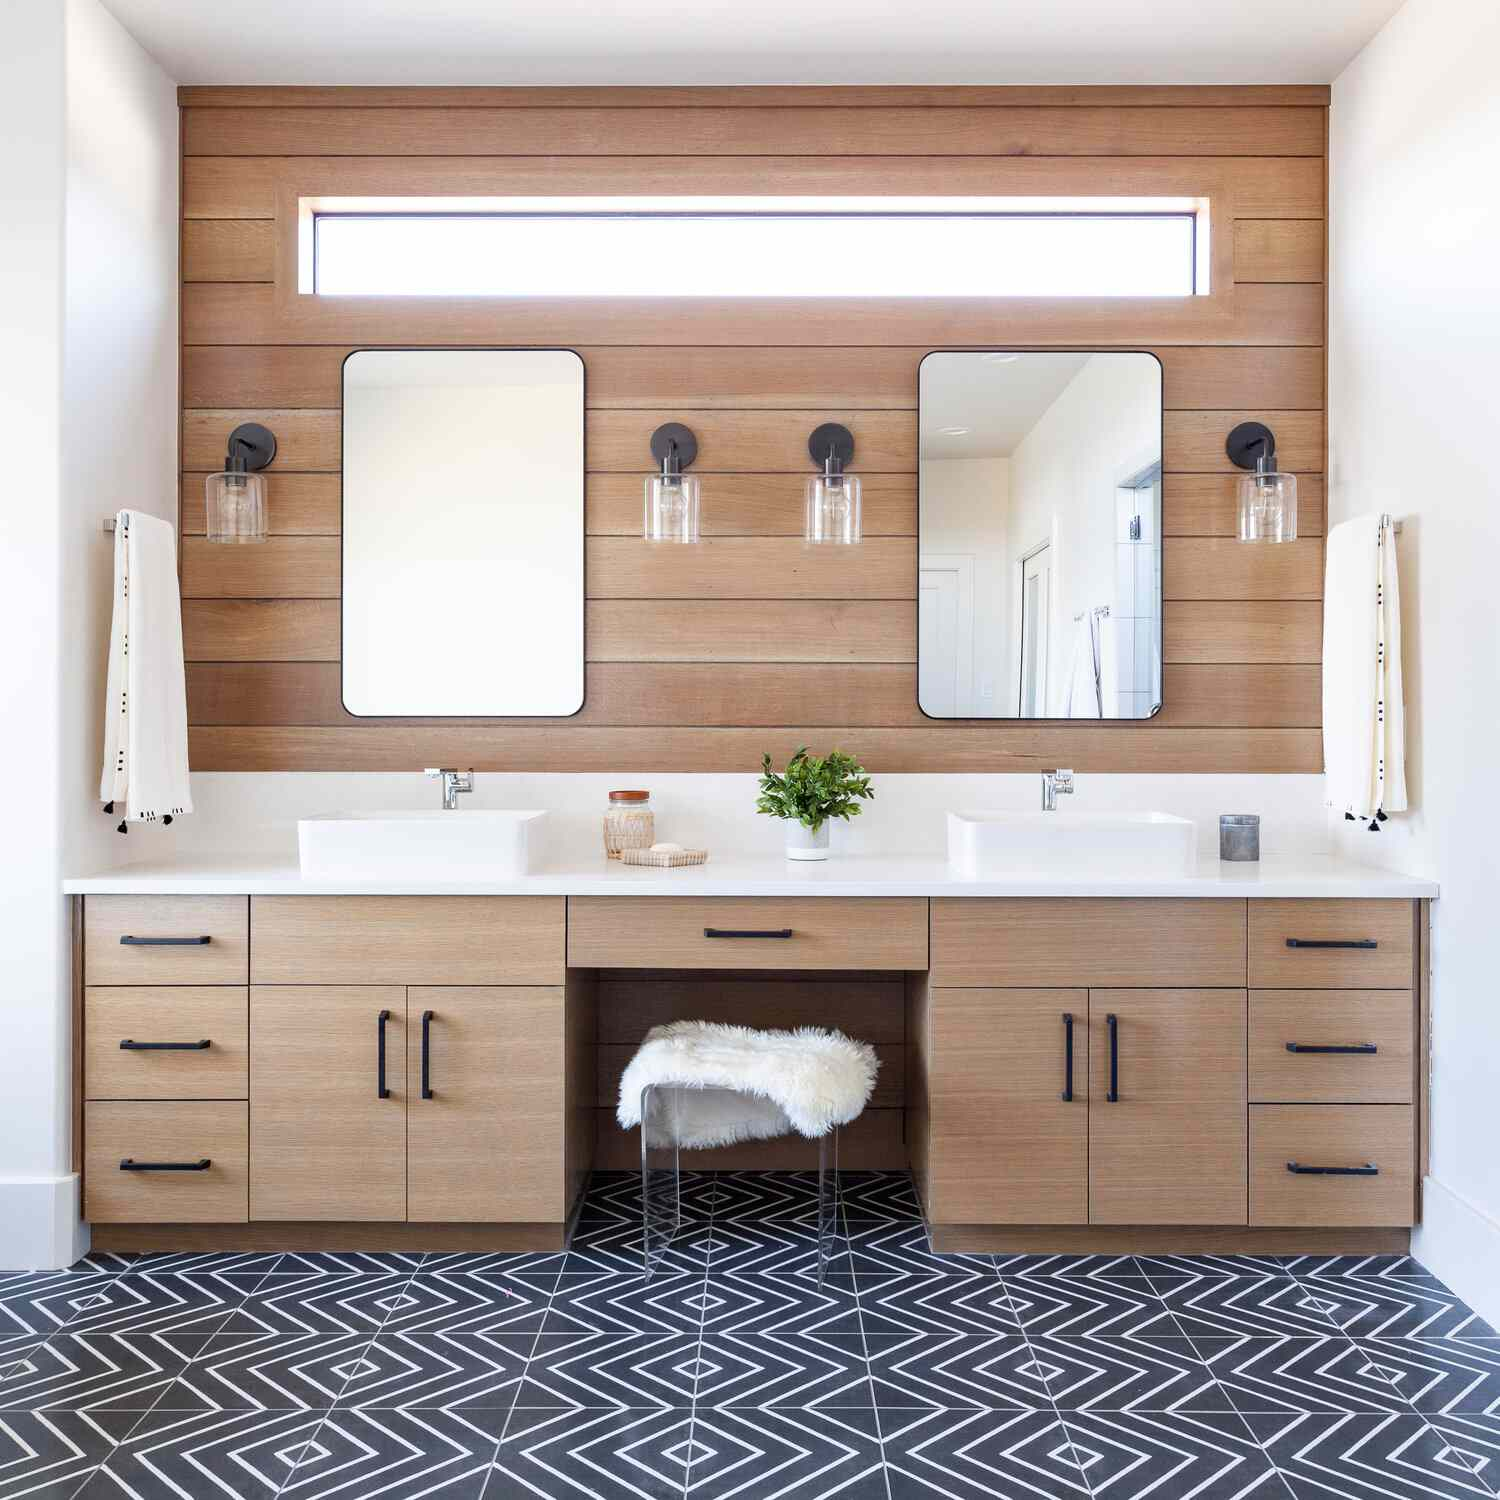 A bathroom with a wood-lined double vanity